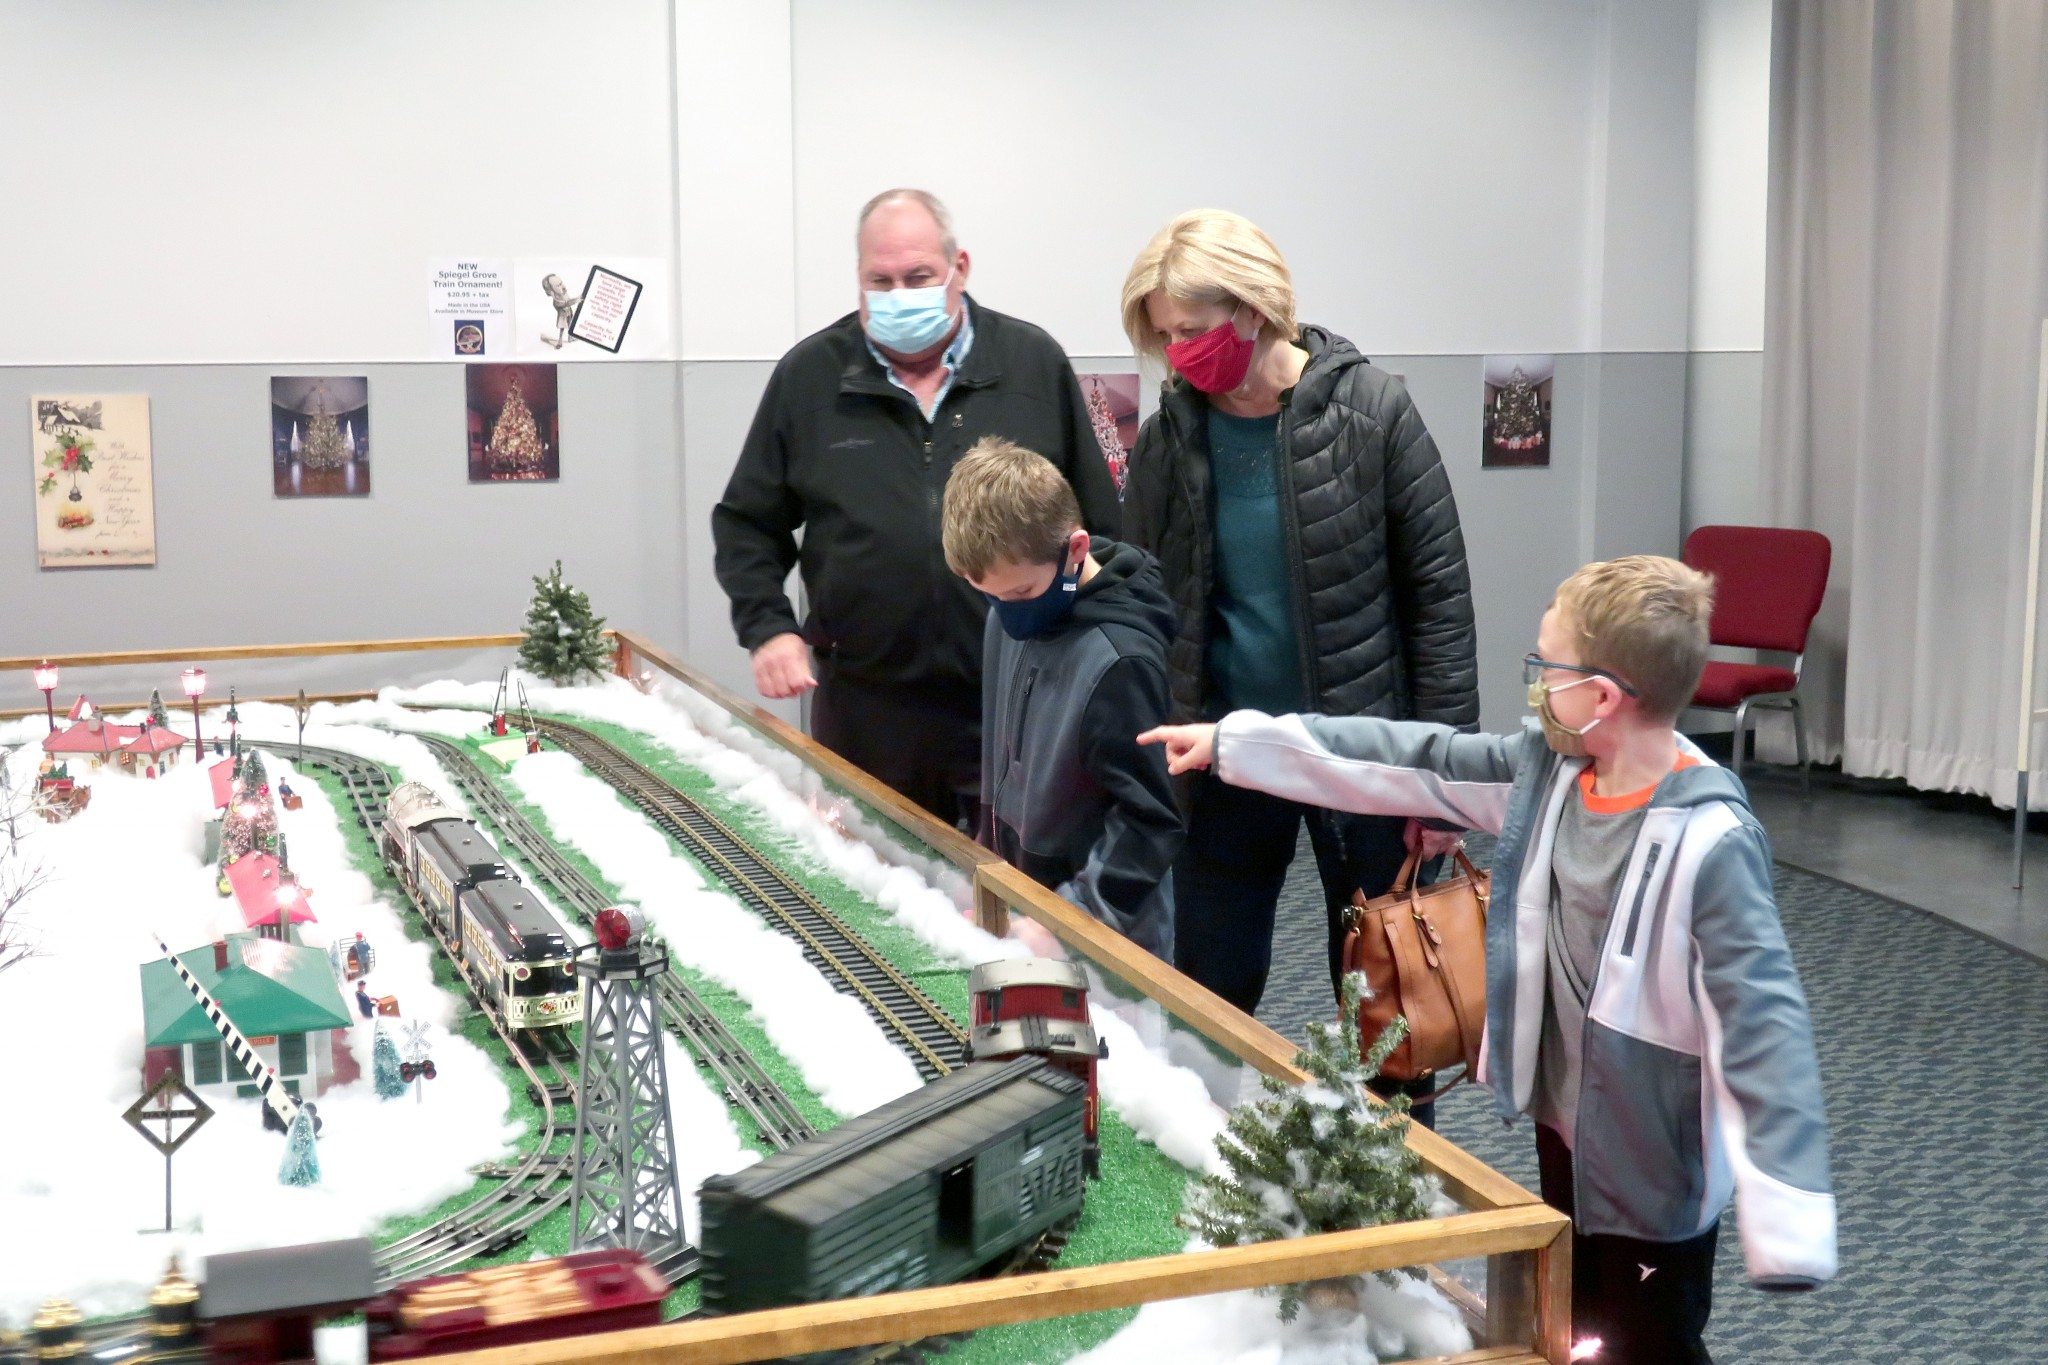 """Attendees at the annual Train Clinic, set for Saturday, Jan. 2 at the Hayes Presidential Library & Museums, will also get to see the """"Hayes Train Special"""" model train display. (Submitted photo)"""